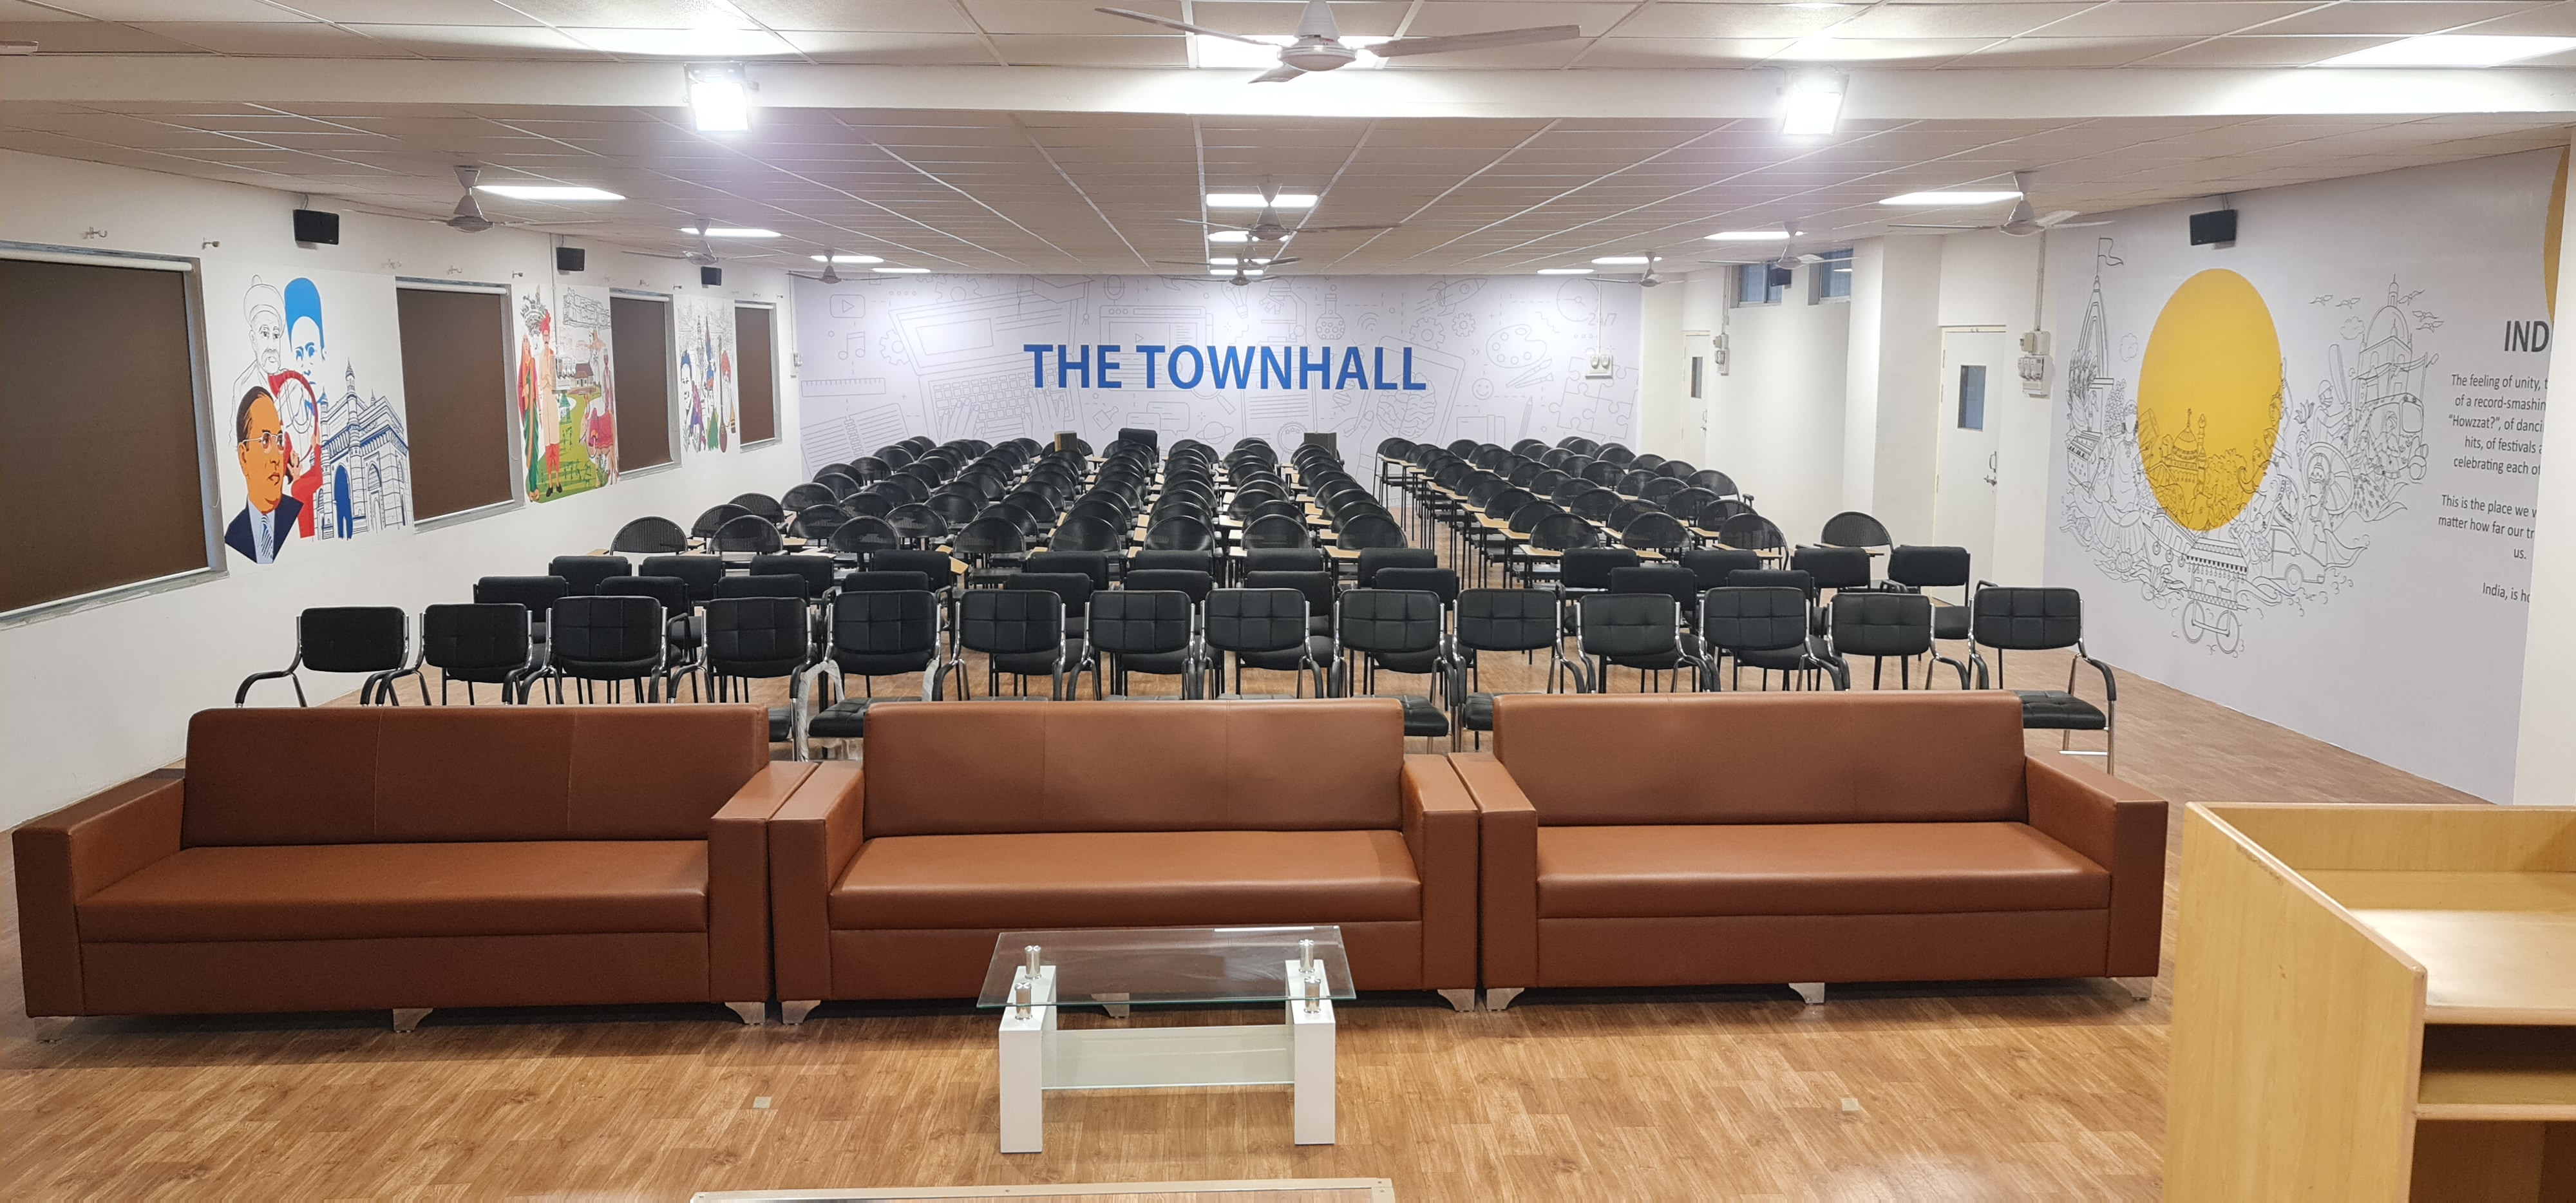 The Town hall for seminars in International School of Management Studies, one of the best MBA colleges in Pune